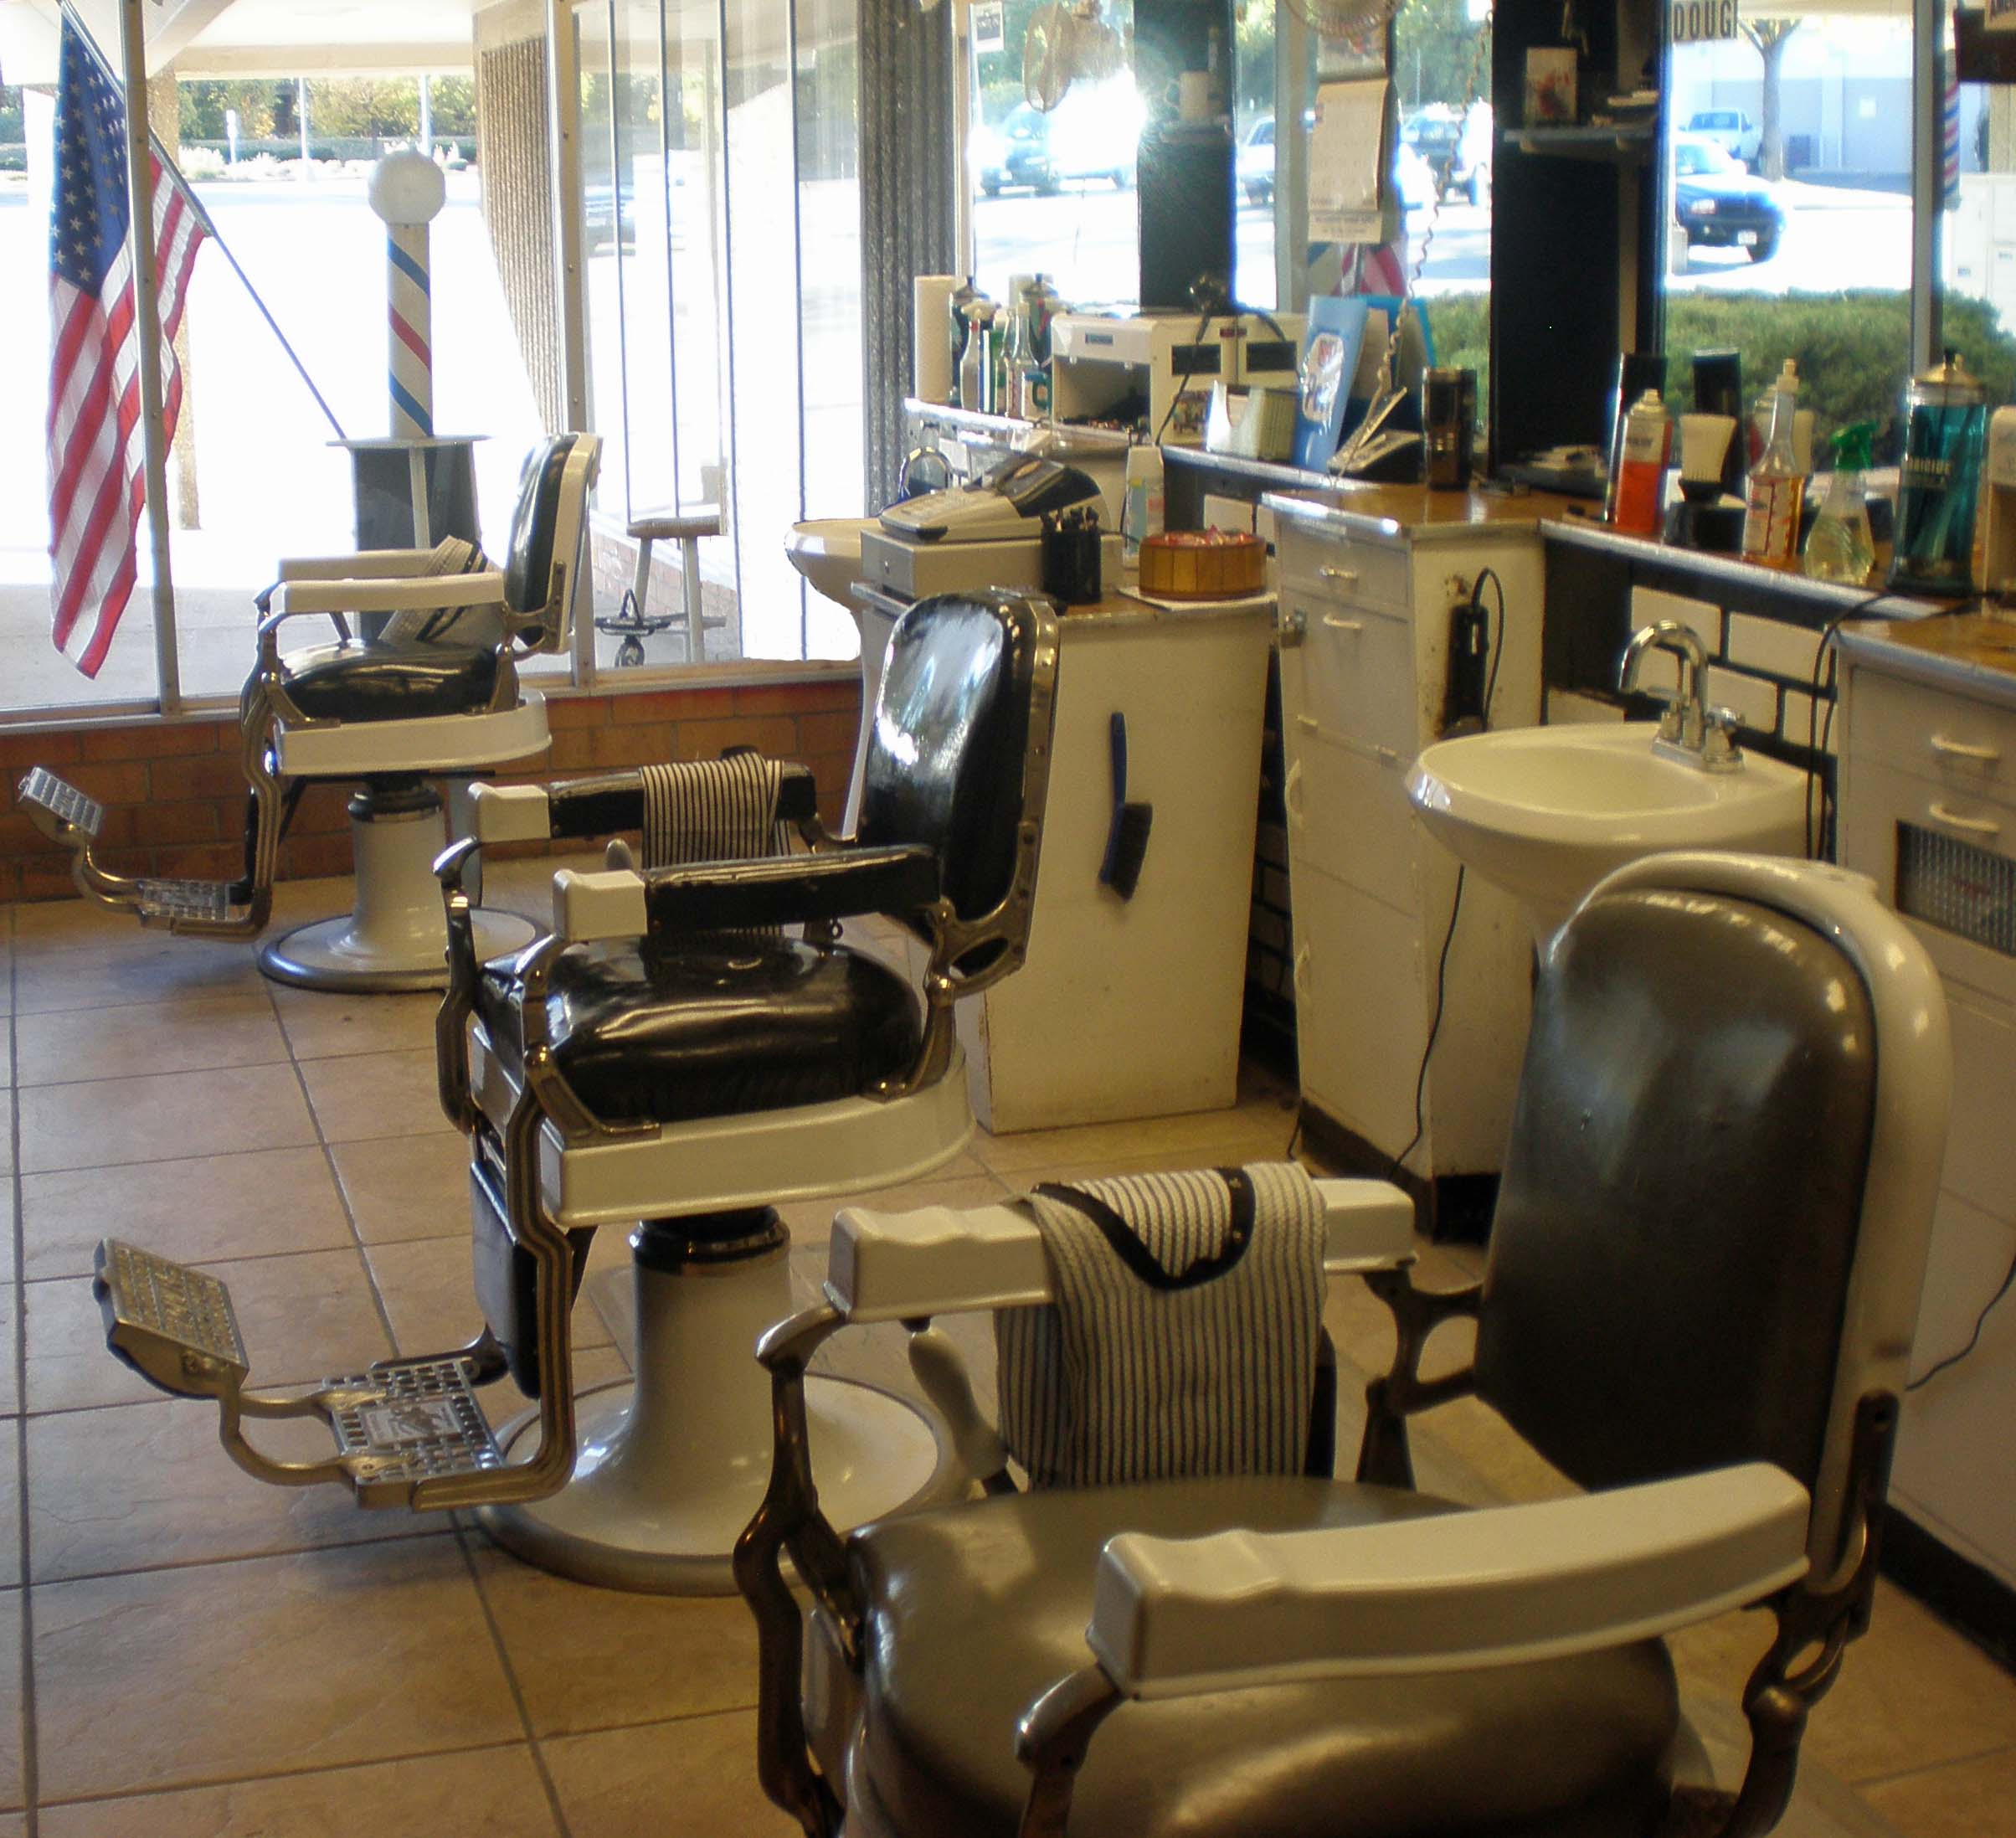 Koken Barber Chairs Koken Barber Chairs The Barber Den